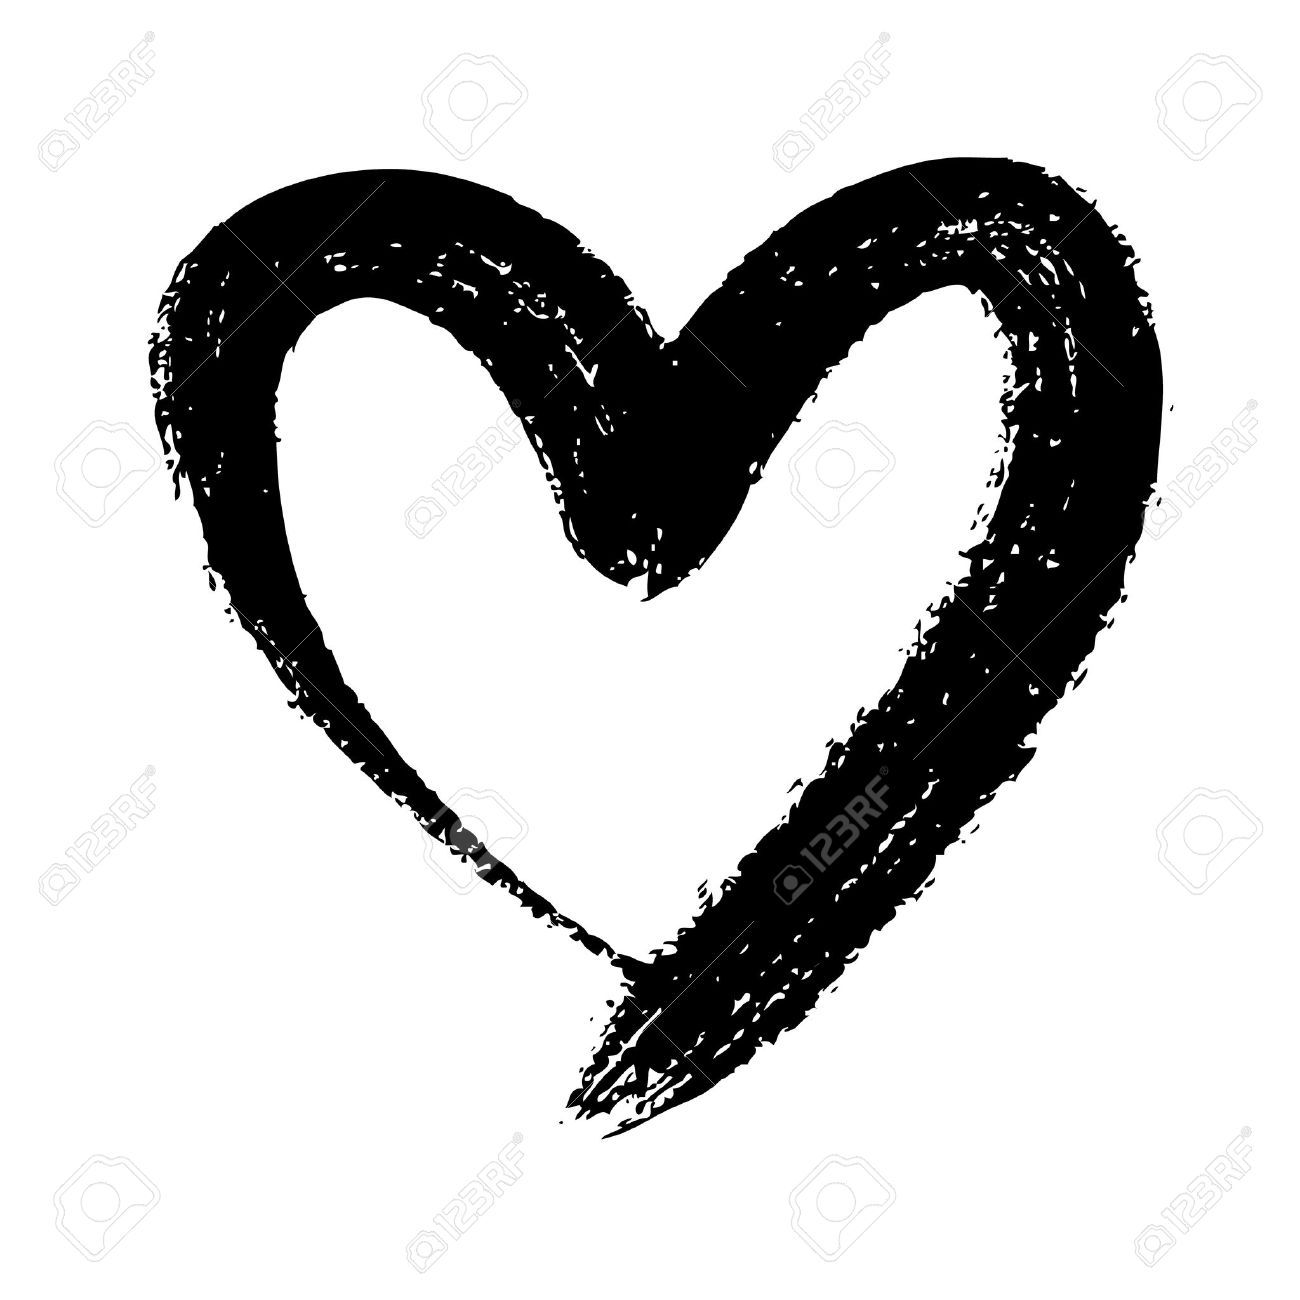 small resolution of doodle hand drawn heart shaped on white background royalty free